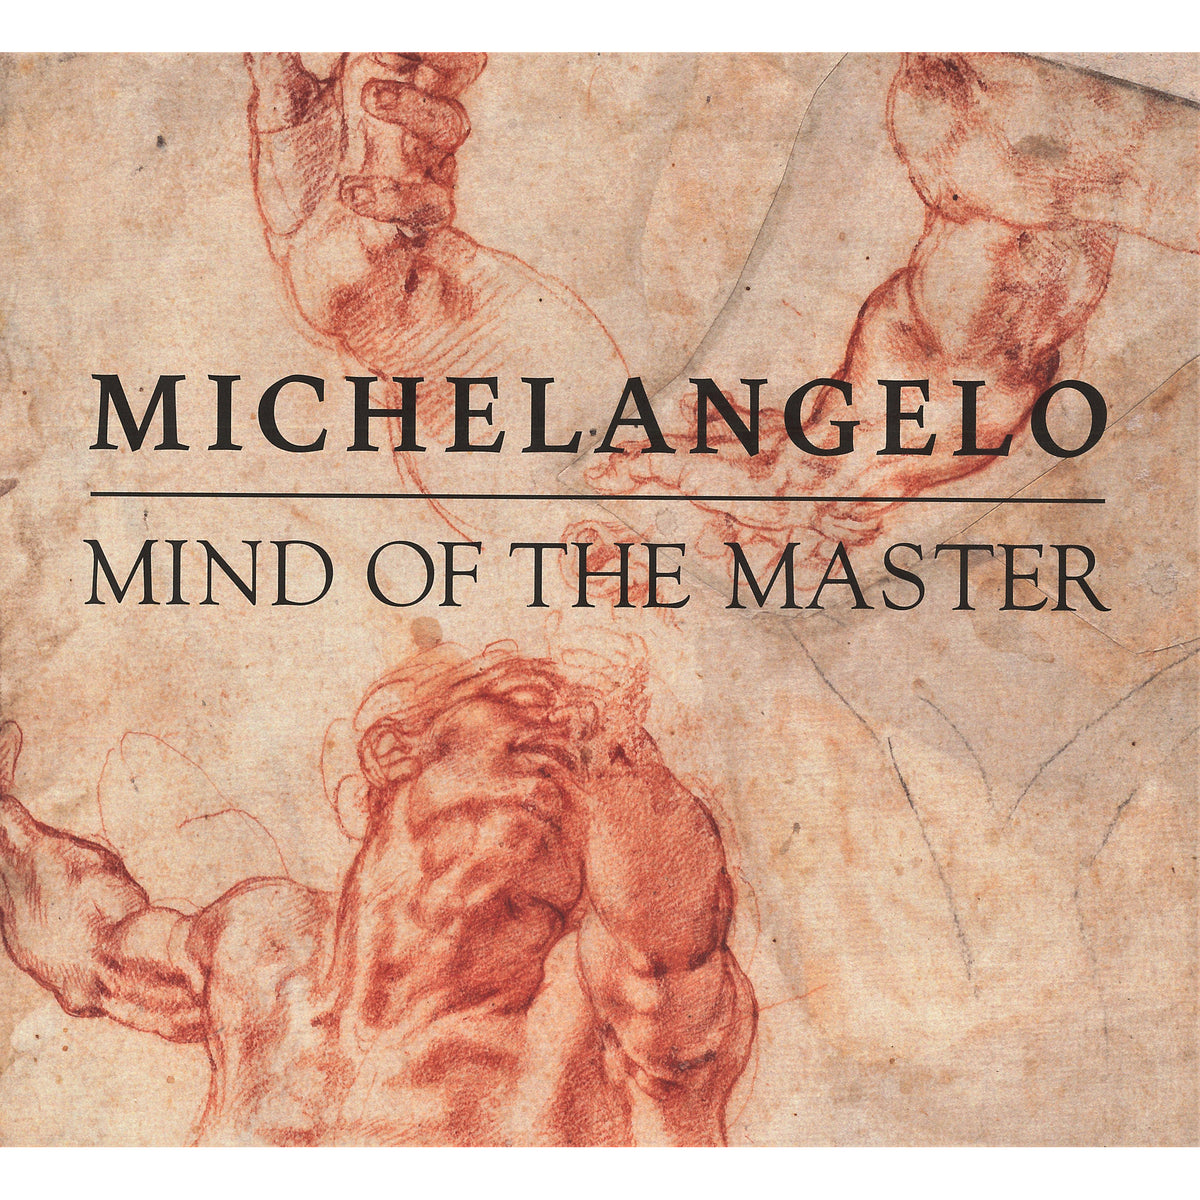 Michelangelo: Mind of the Master